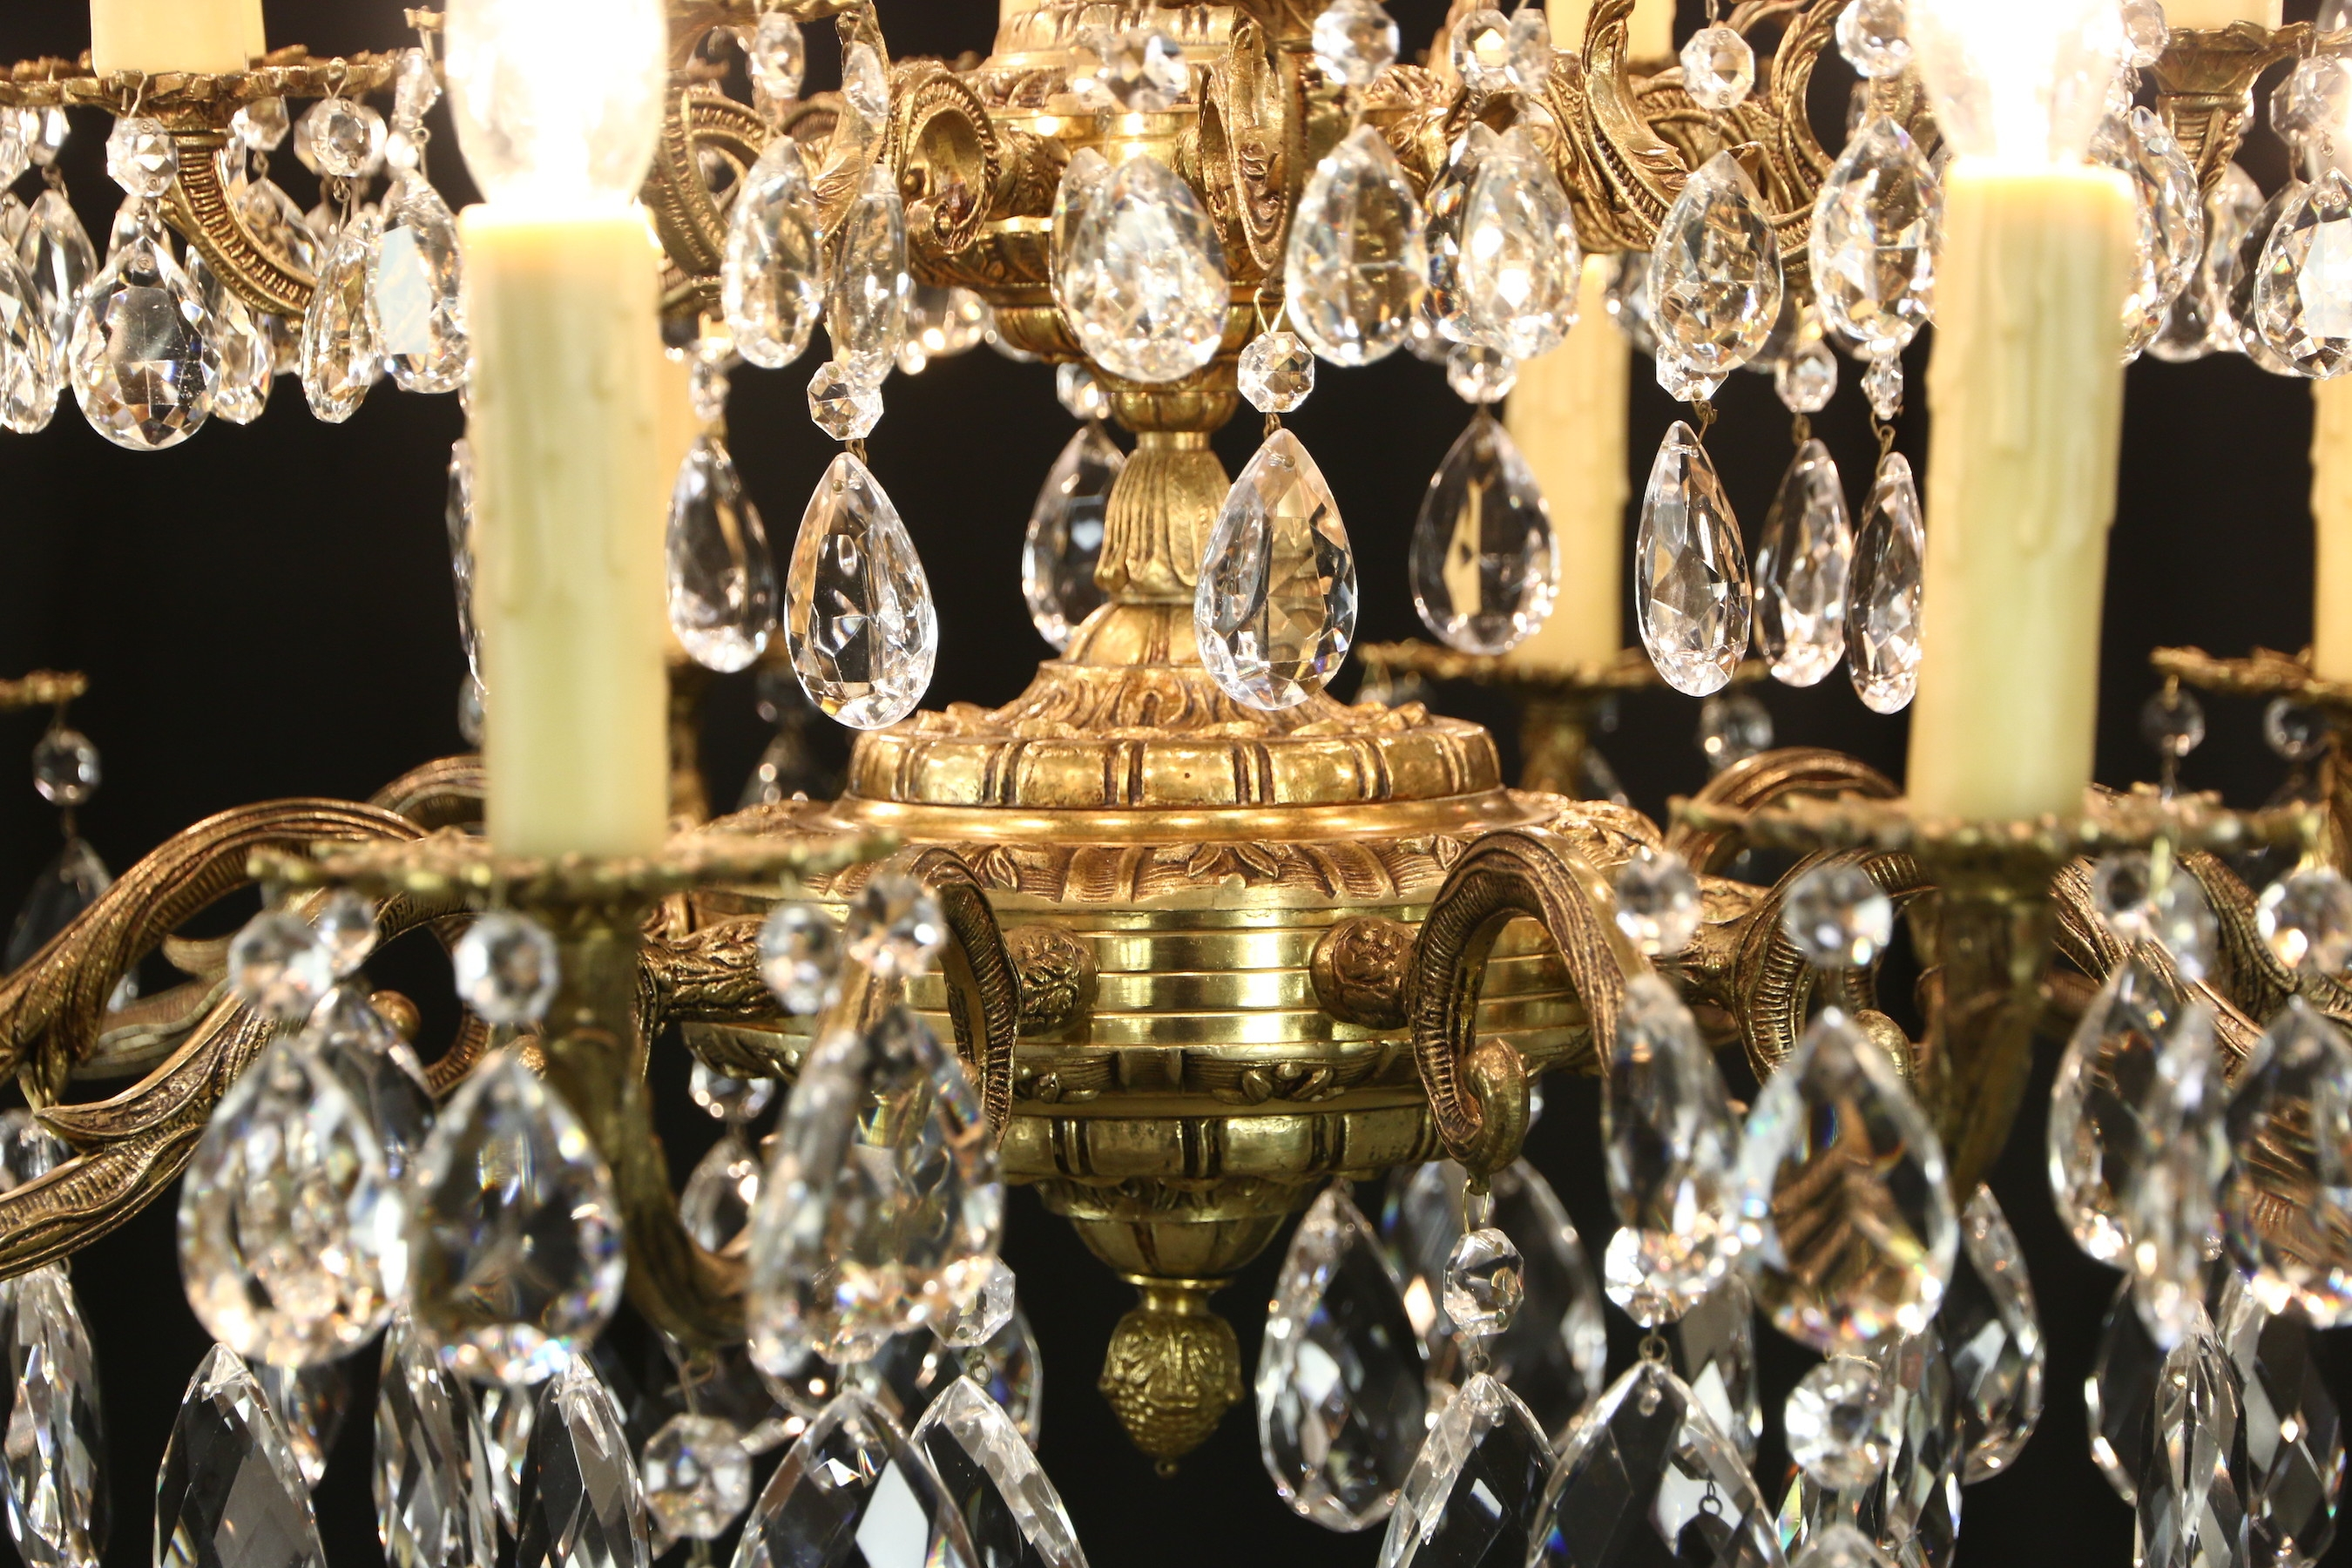 Sold Embossed Brass Cut Crystal 20 Light Candle Vintage Throughout Vintage Brass Chandeliers (View 8 of 15)